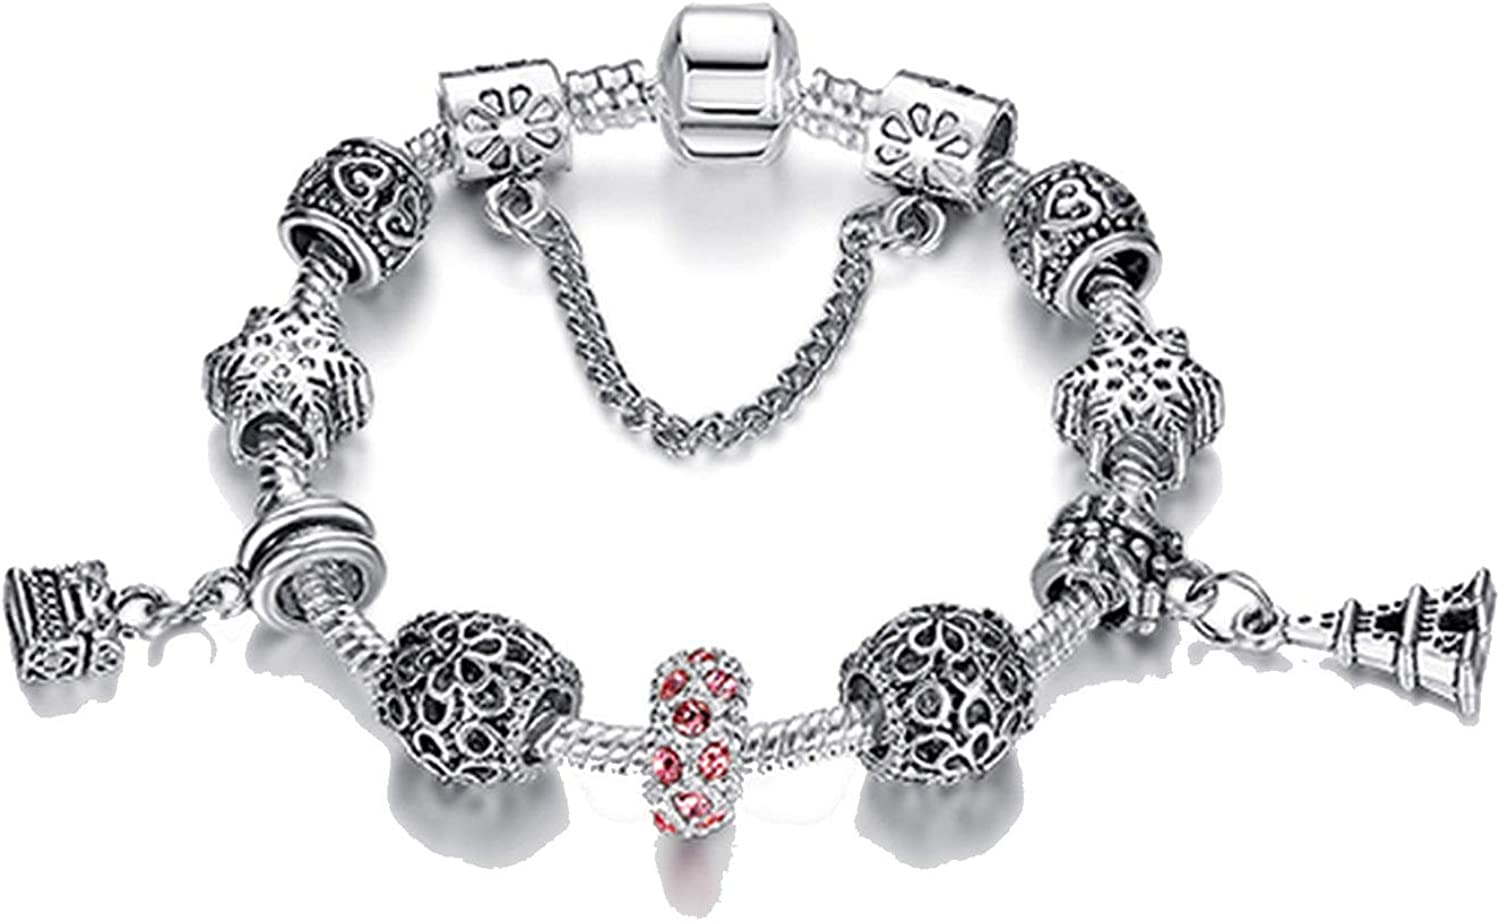 PHKYT Original Silver 925 Crystal Four Leaf Clover Bracelet with Clear Glass Beads Charm Bracelet Bangle for Women DIY Jewelry